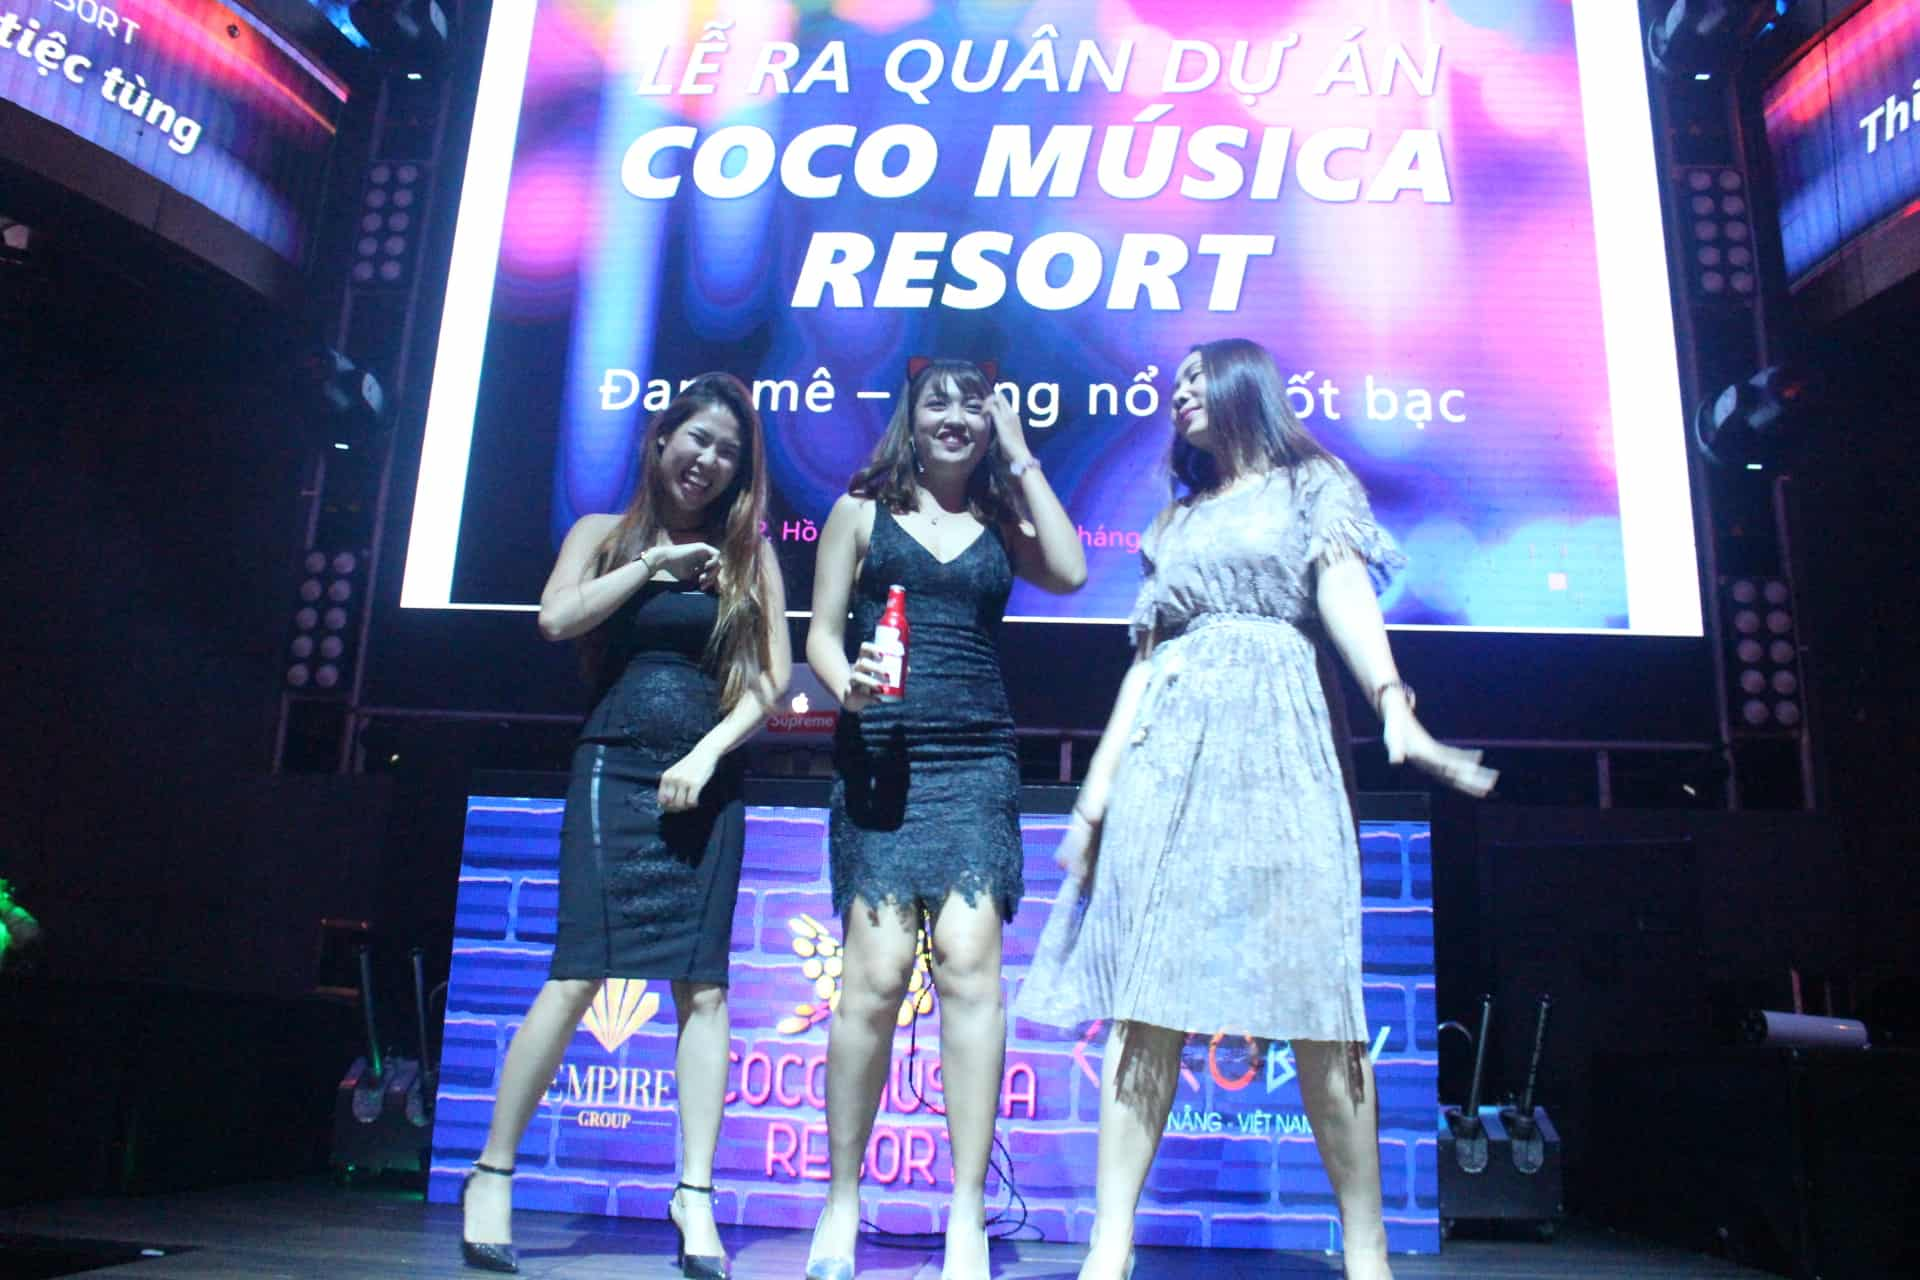 smartrealtors and partners tham gia le ra mat du an coco musica resort quay that sung – bung suc ban – don tet ung dung 8